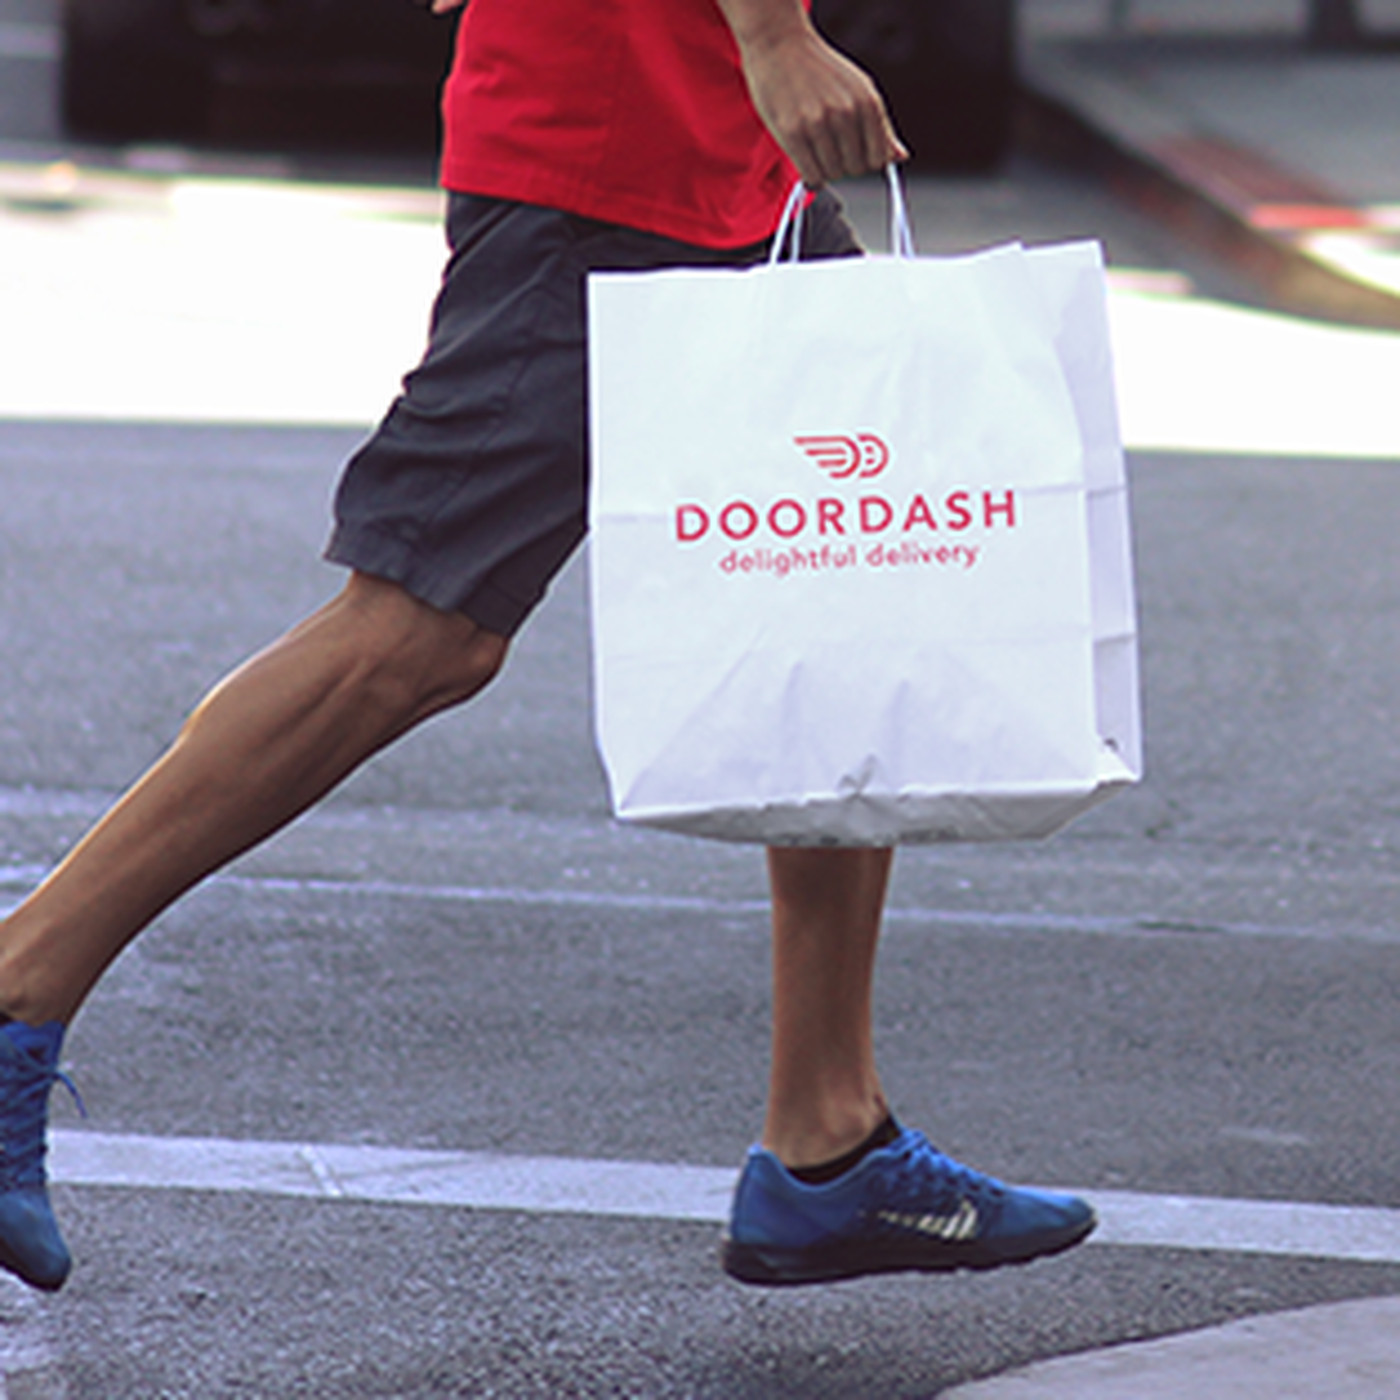 DoorDash Is Misleading Customers About the Price of Their Food - Eater